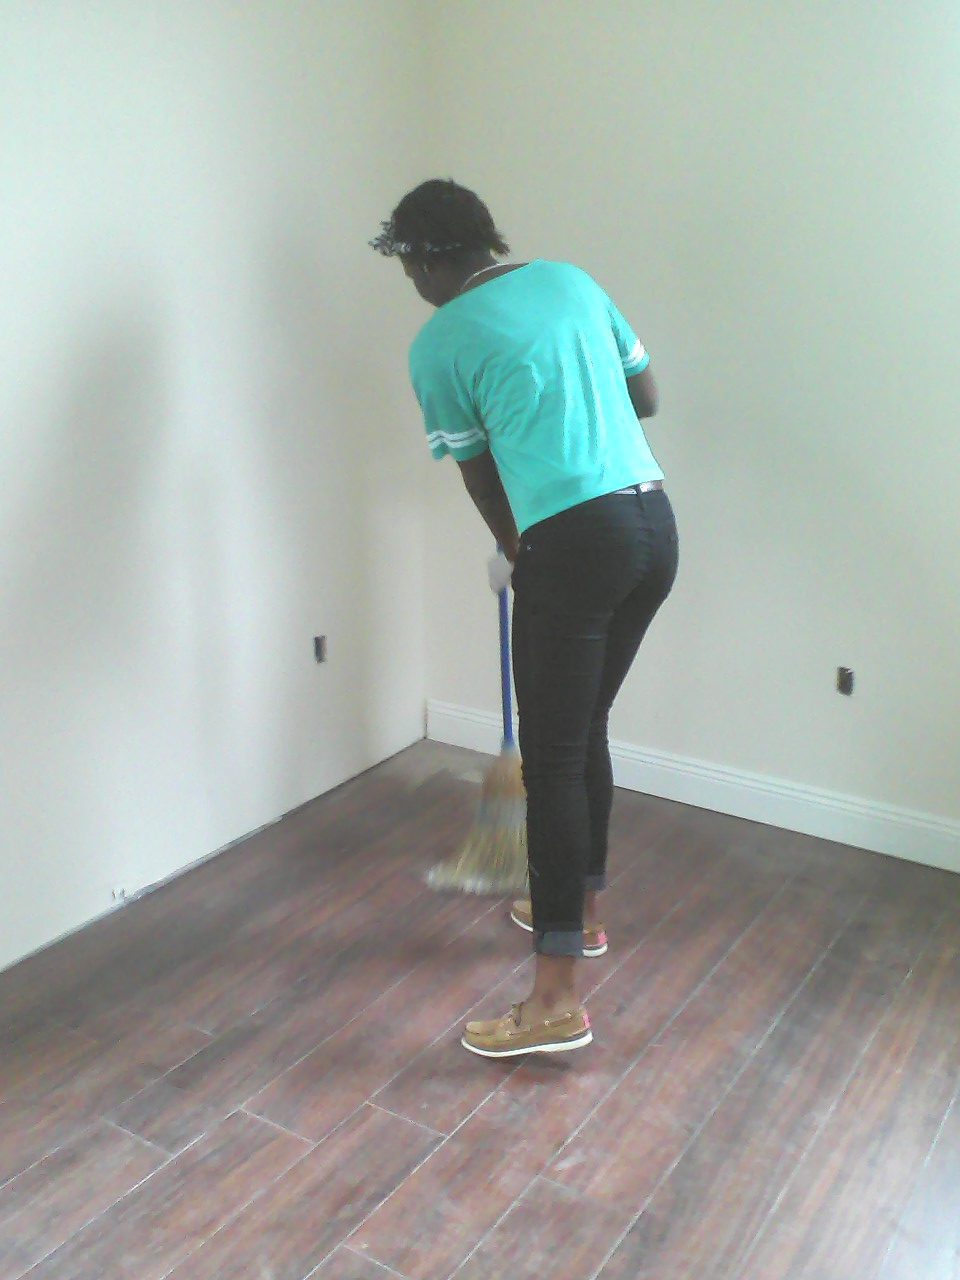 Sweepin' away.